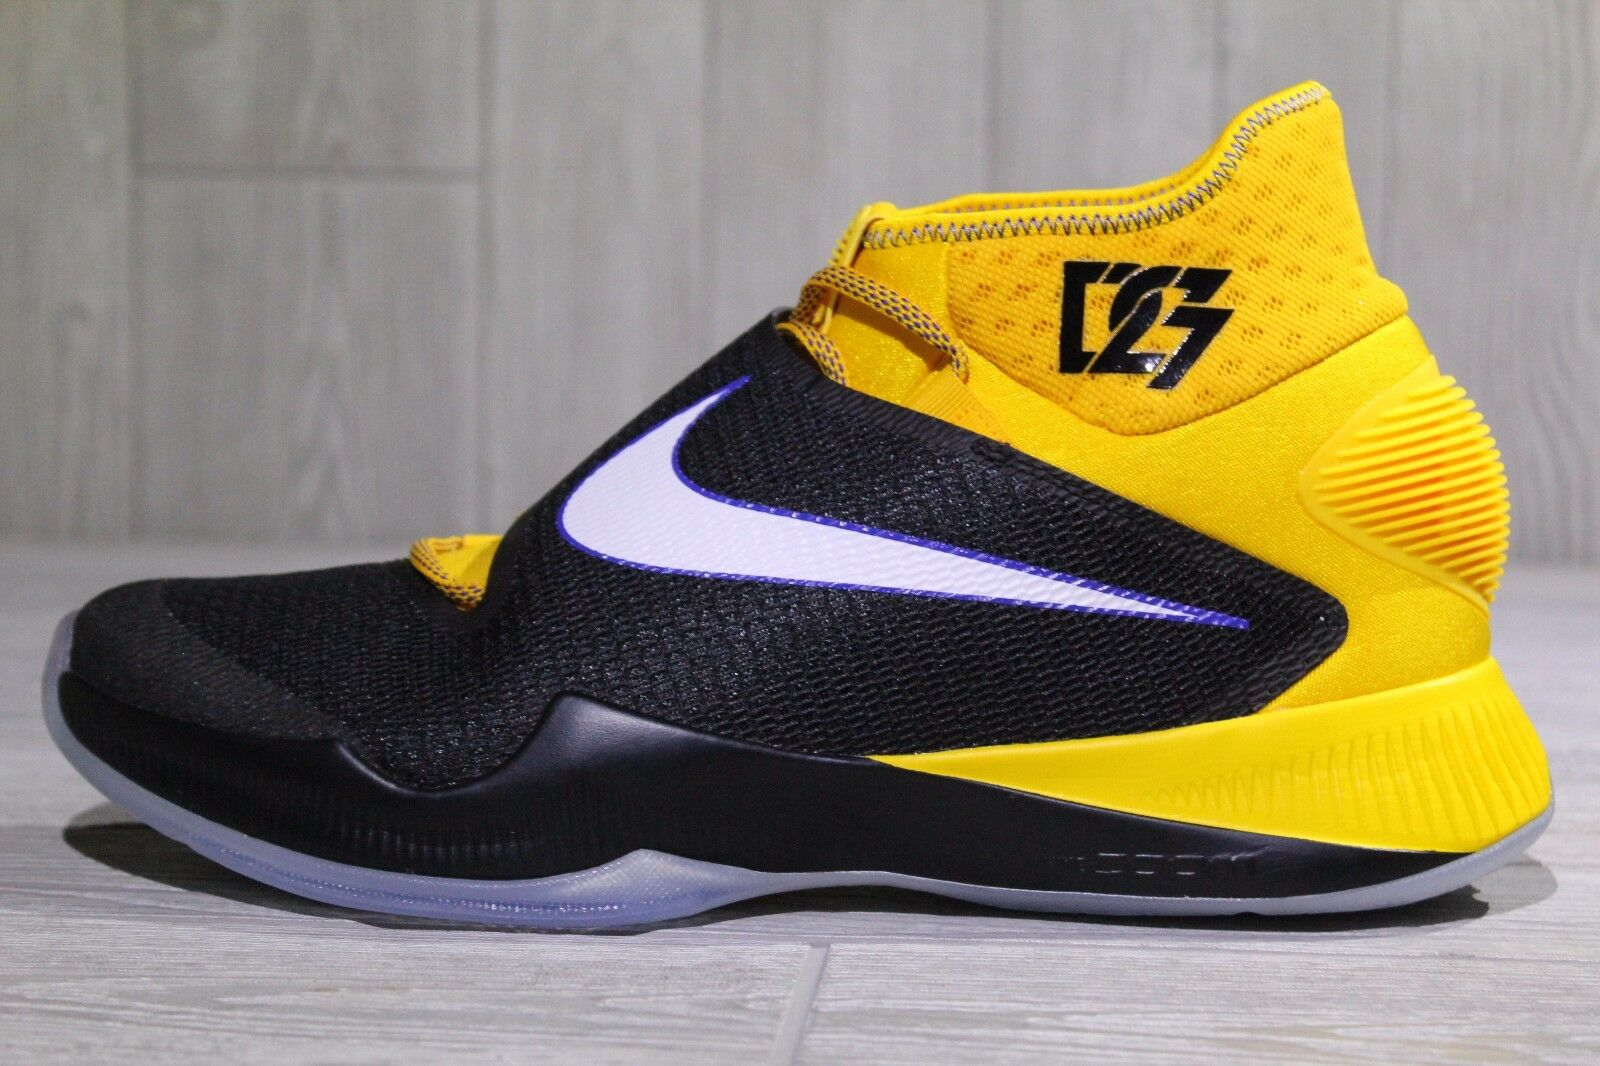 quality design aee6f 0729a ... best price 18 rare nike hyperrev 2016 pe size draymond green warriors  shoes size pe 10